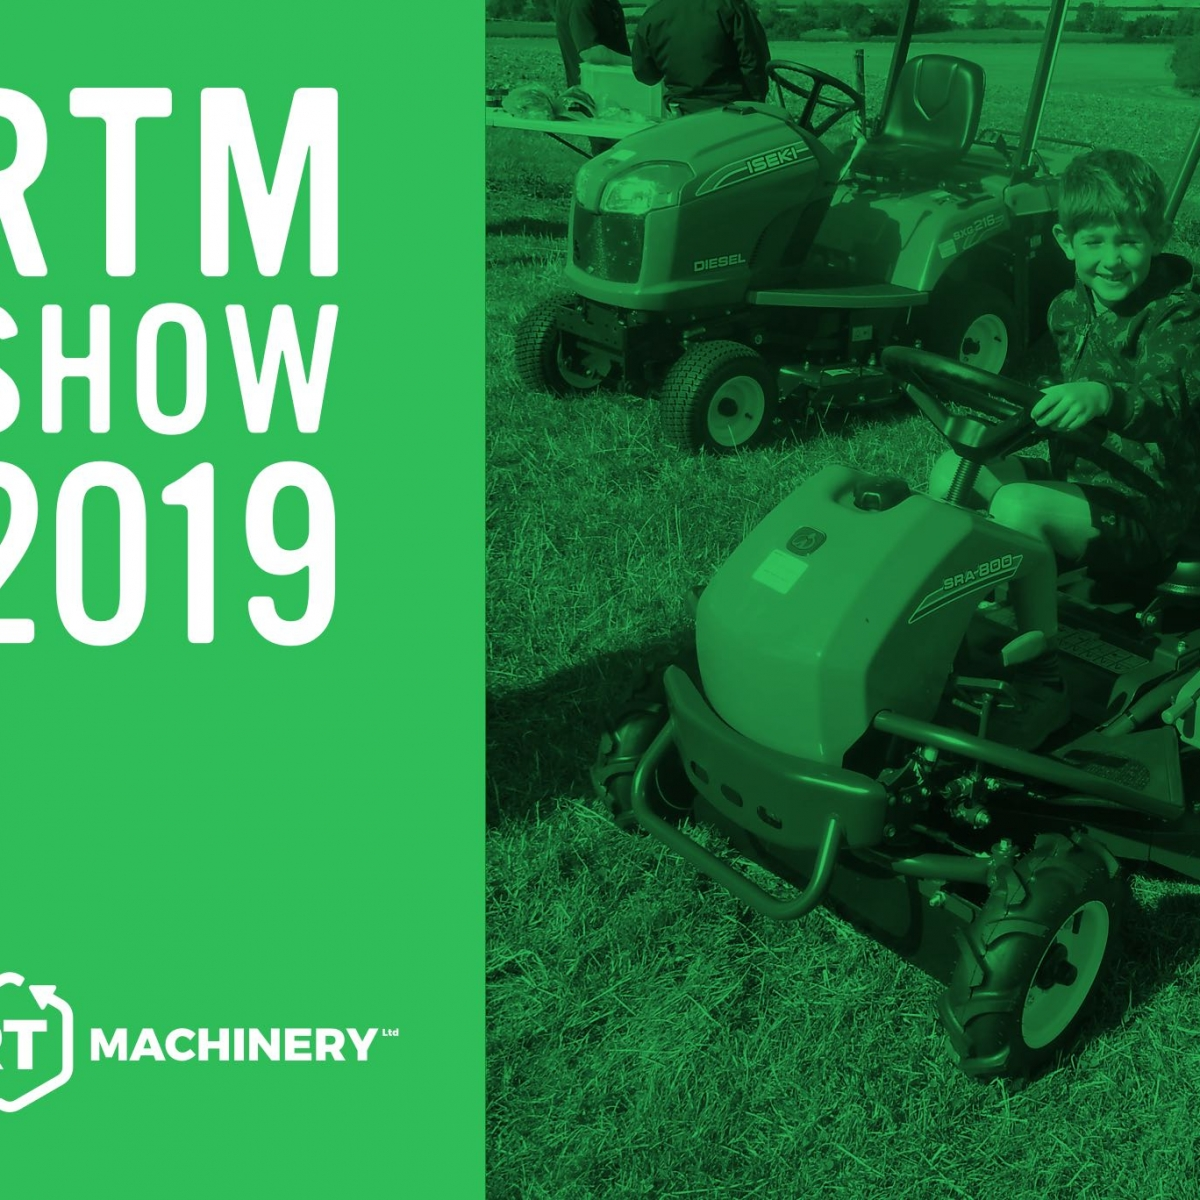 rtm-show-2019-preview